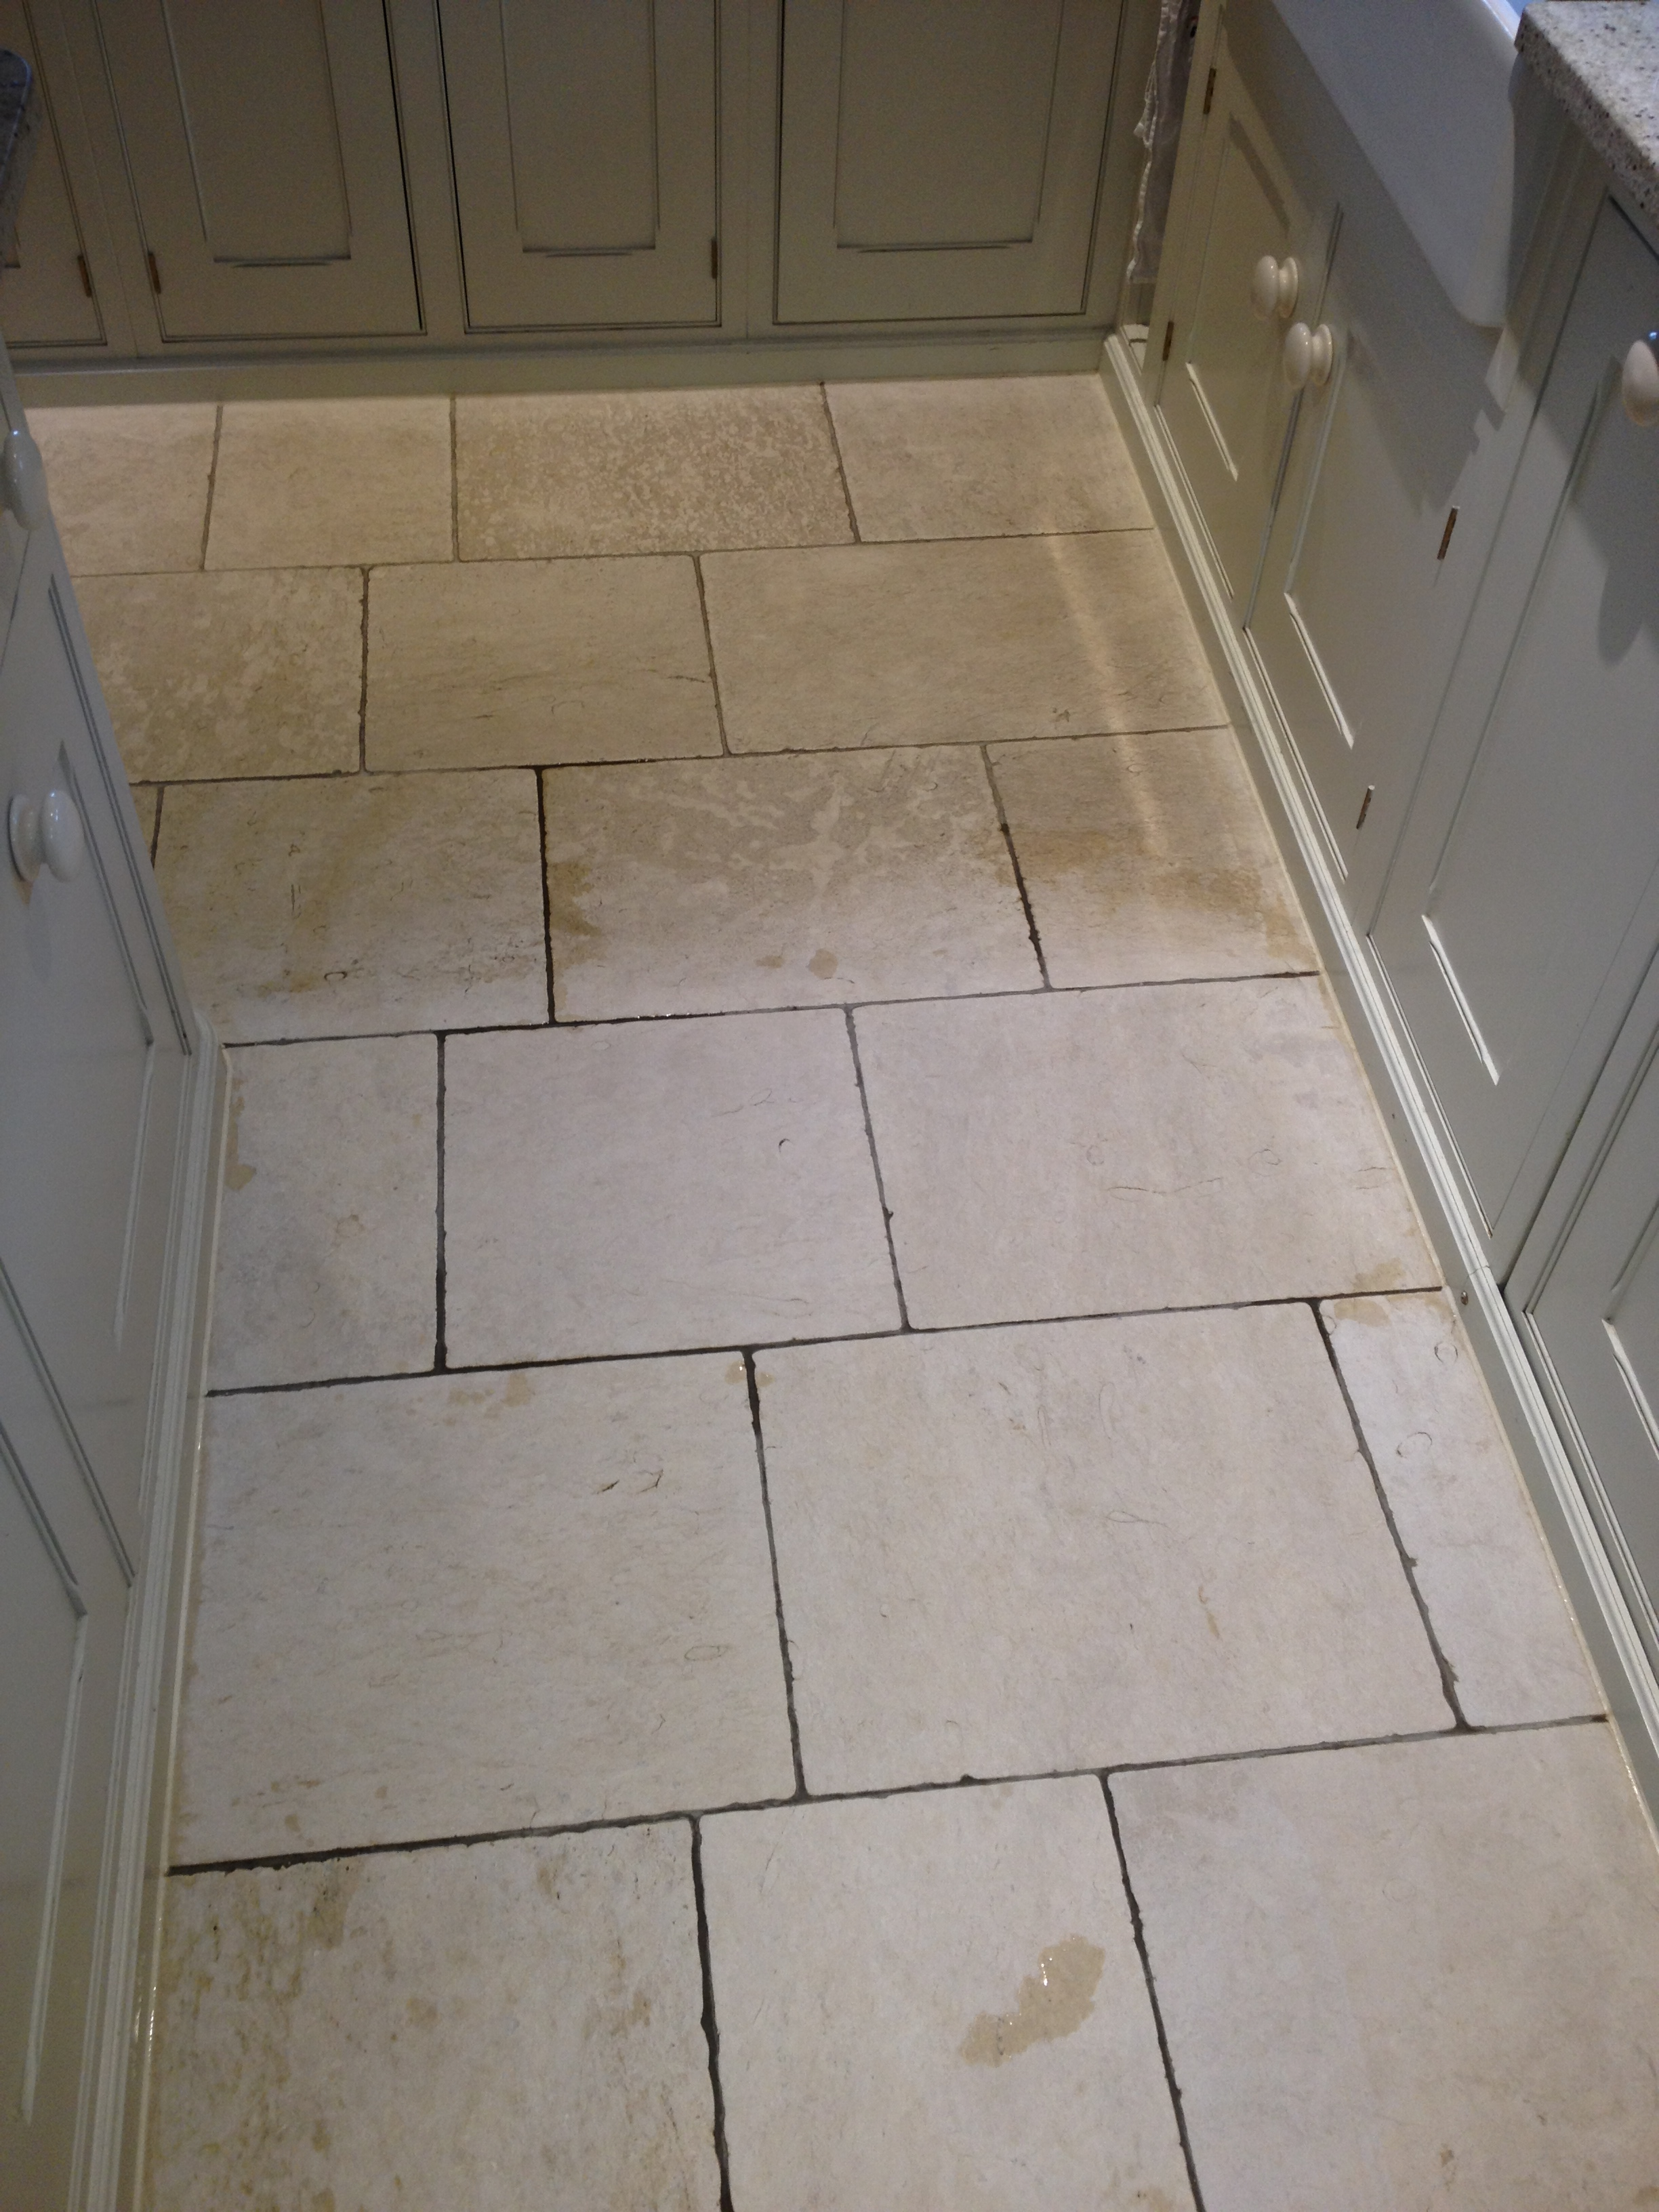 Travertine tiles south middlesex tile doctor travertine tiled kitchen ottershaw during cleaning travertine tiled kitchen ottershaw during cleaning doublecrazyfo Gallery